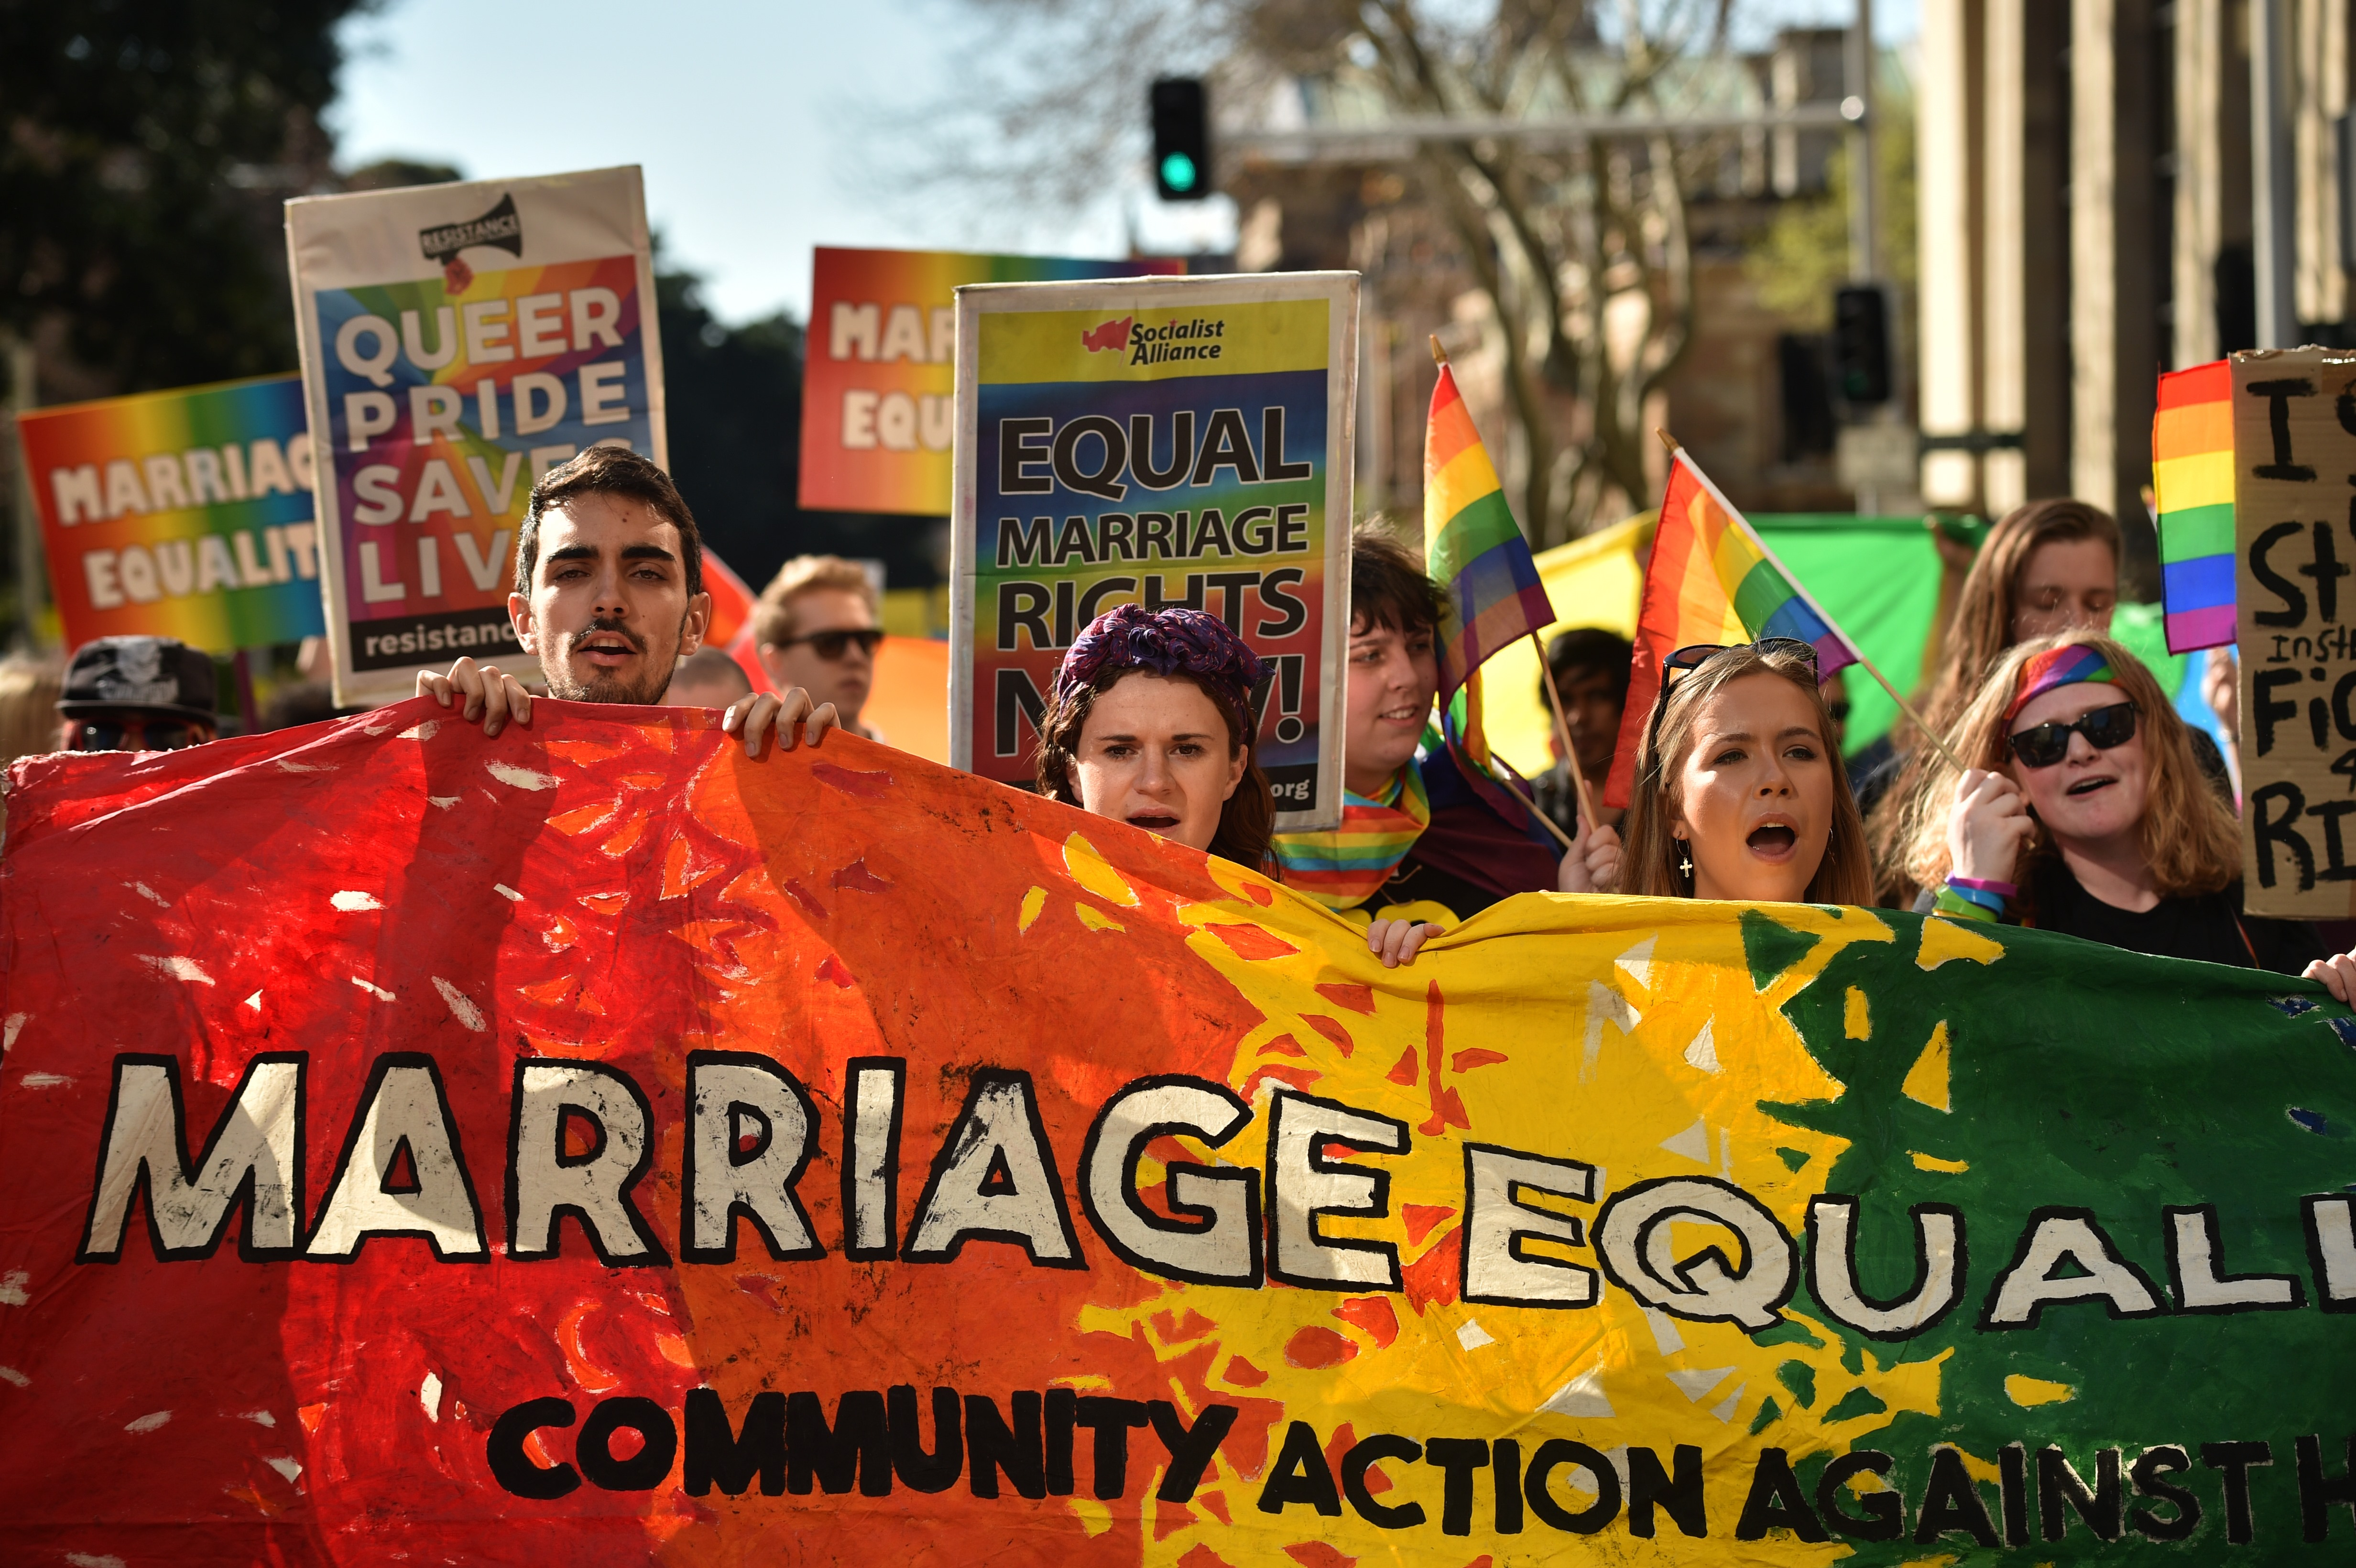 Supporters of same sex marriage